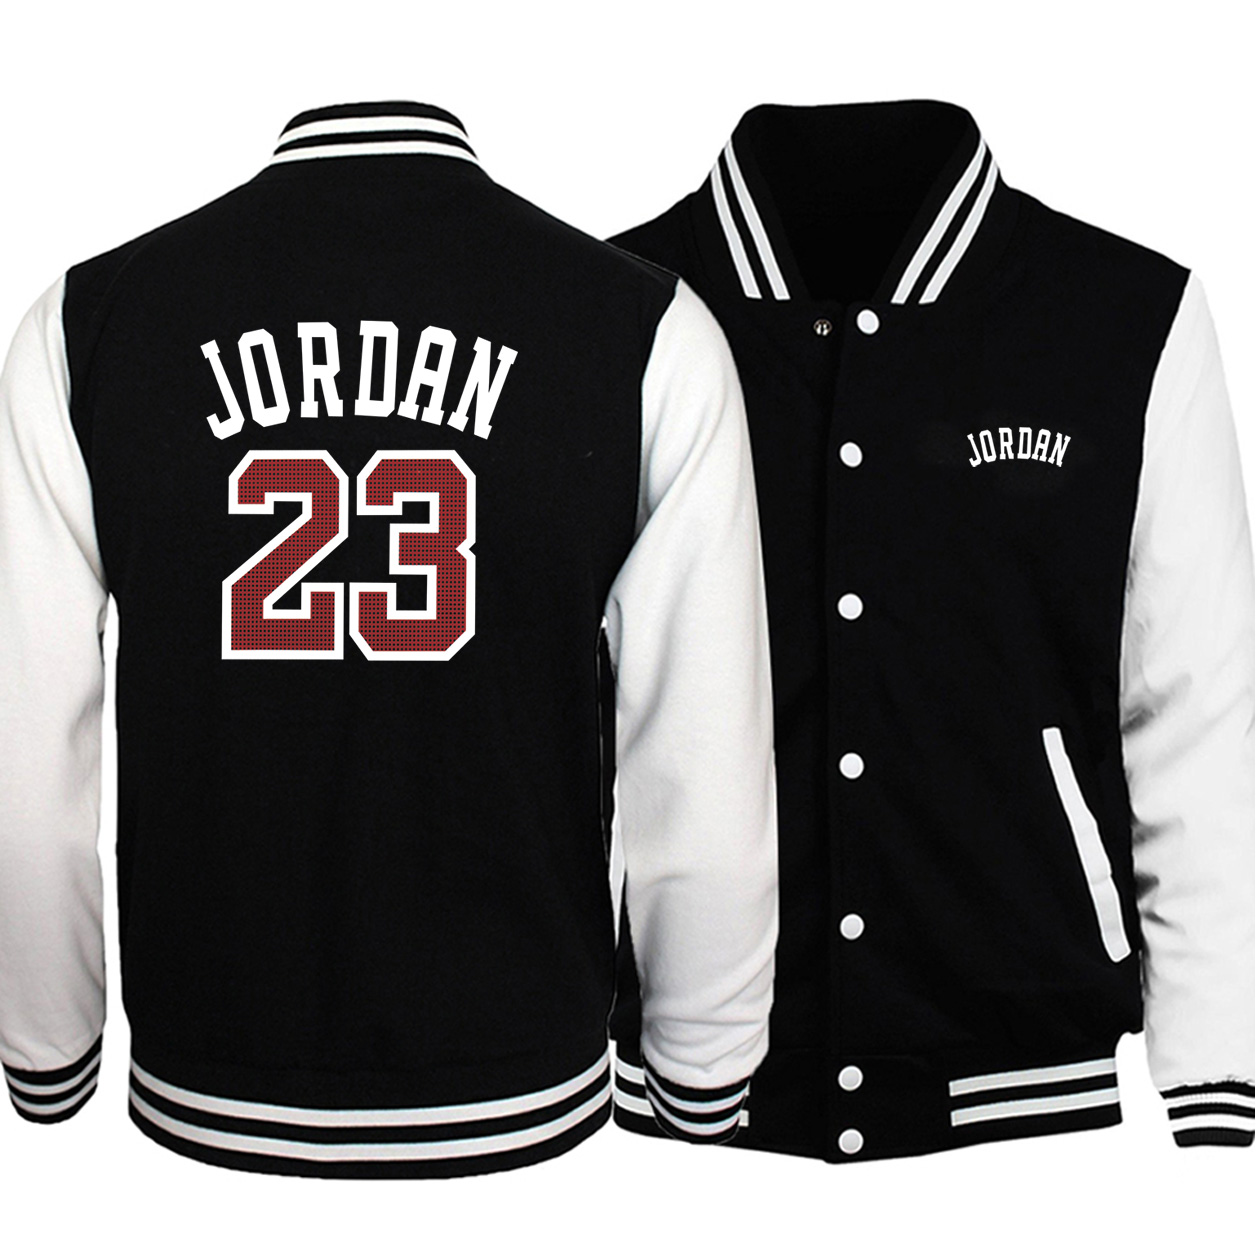 2019 Hot Sale Men Baseball Uniform Sportswear Autumn Bomber Jacket Jordan 23 Print Tracksuit Hip Hop Men Coats Casual Streetwear